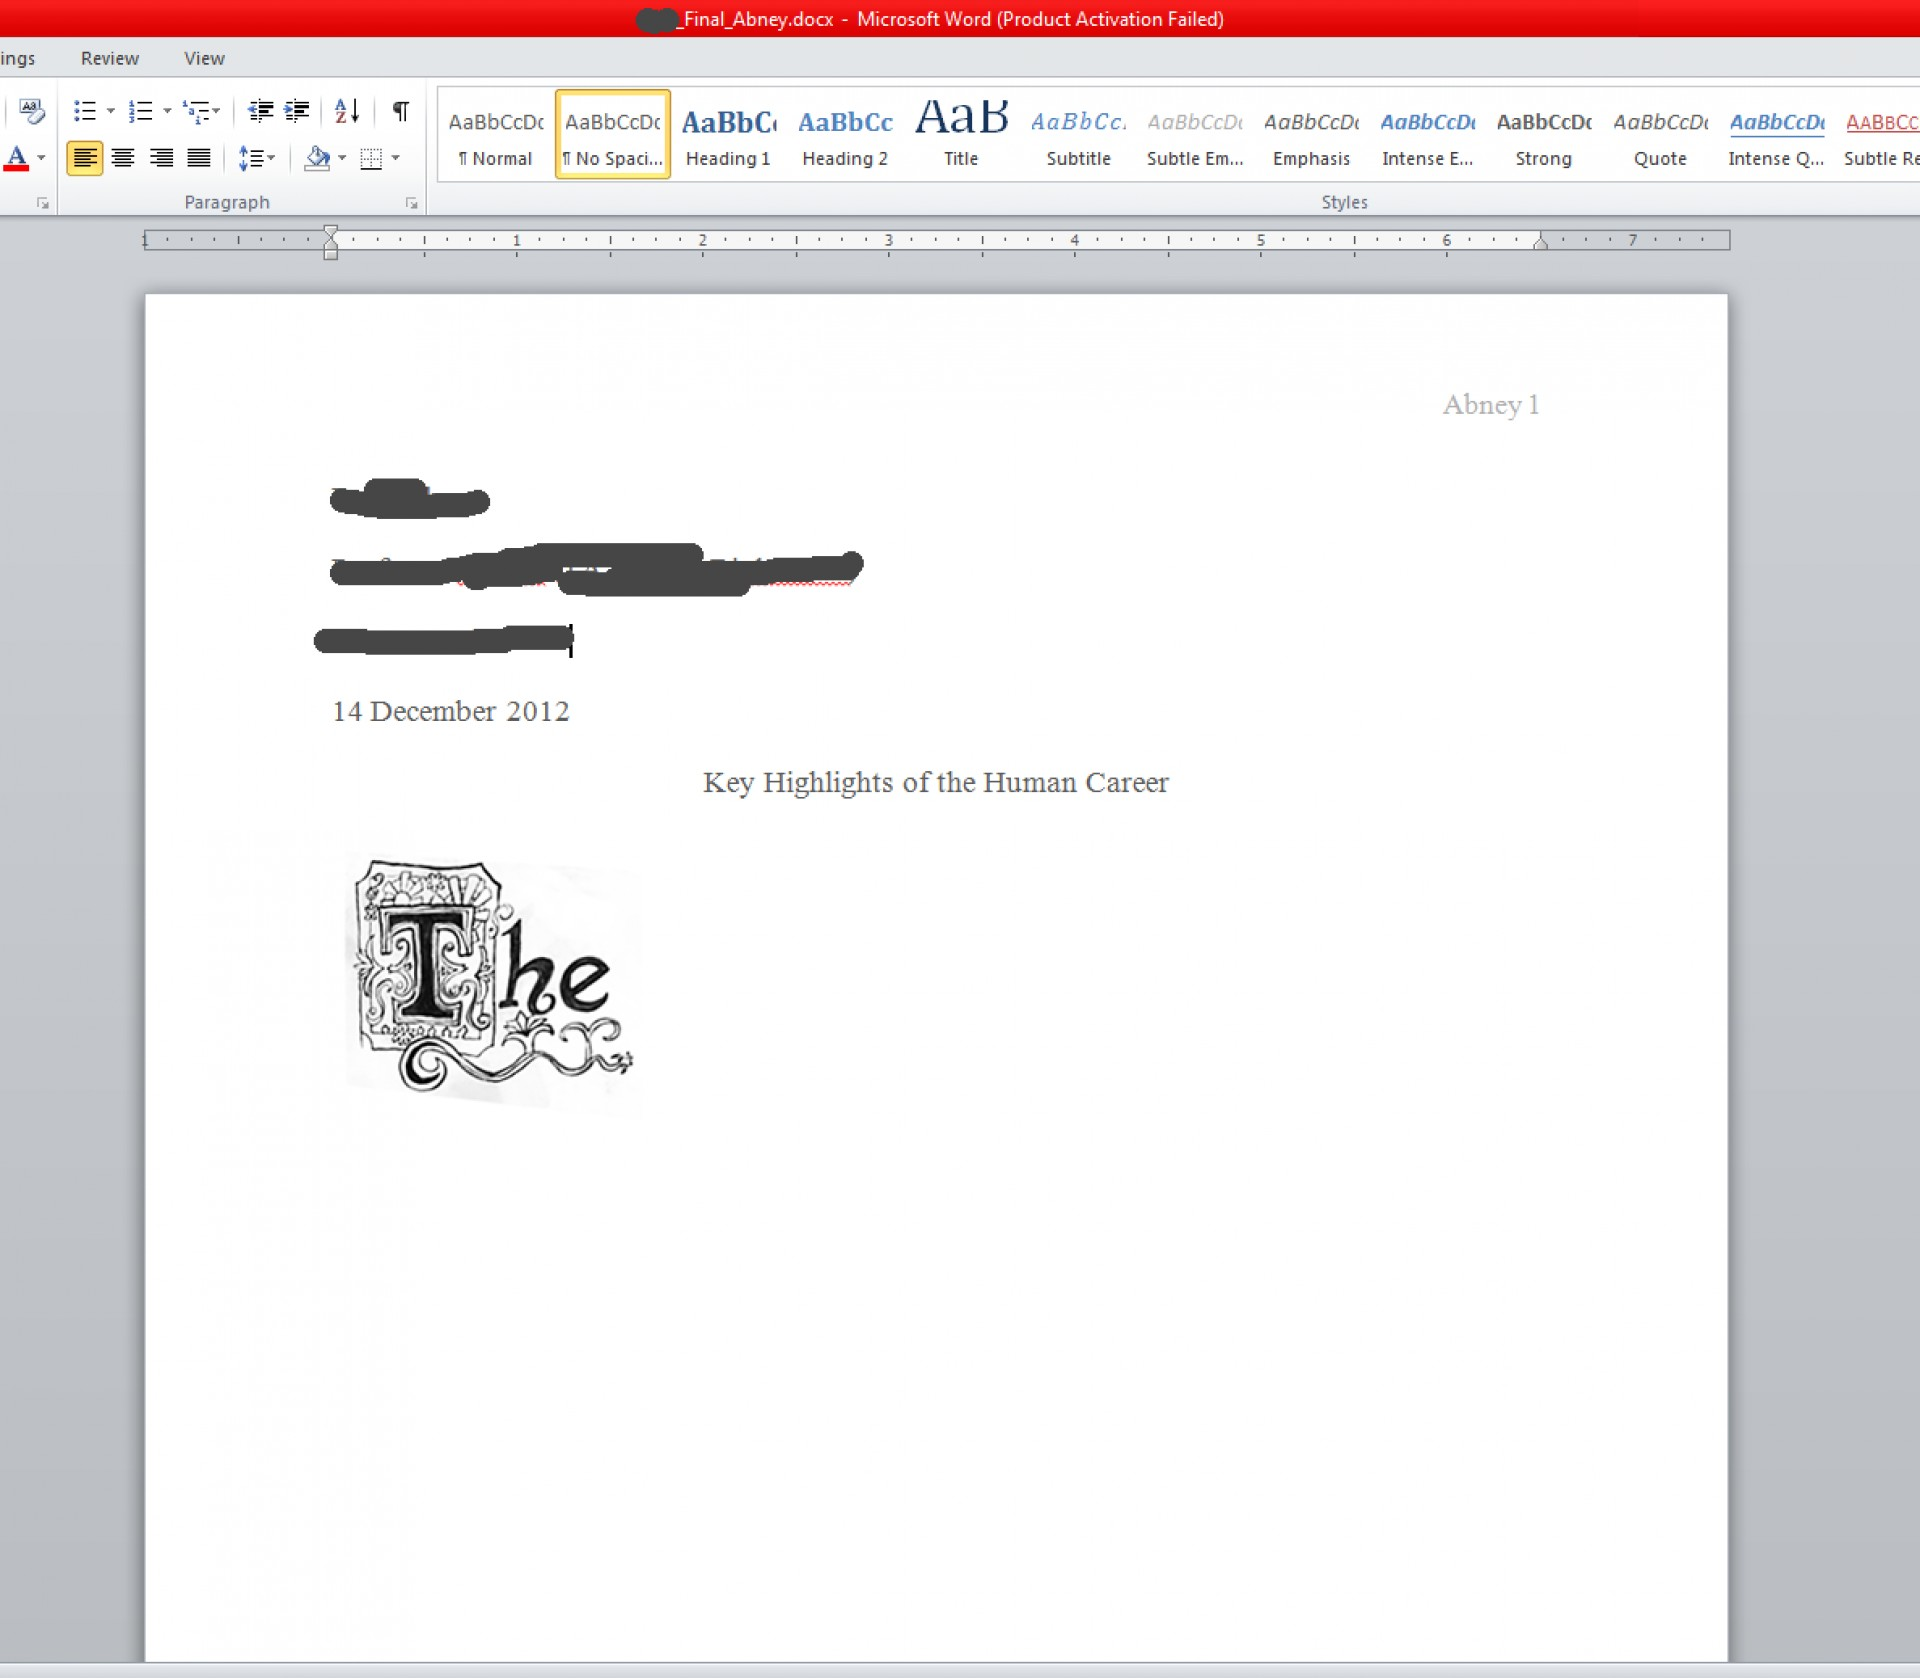 005 Spongebob The Essay Font Example Procrastination How To Beat Critical On Episode Top Google Docs Copy And Paste Name 1920